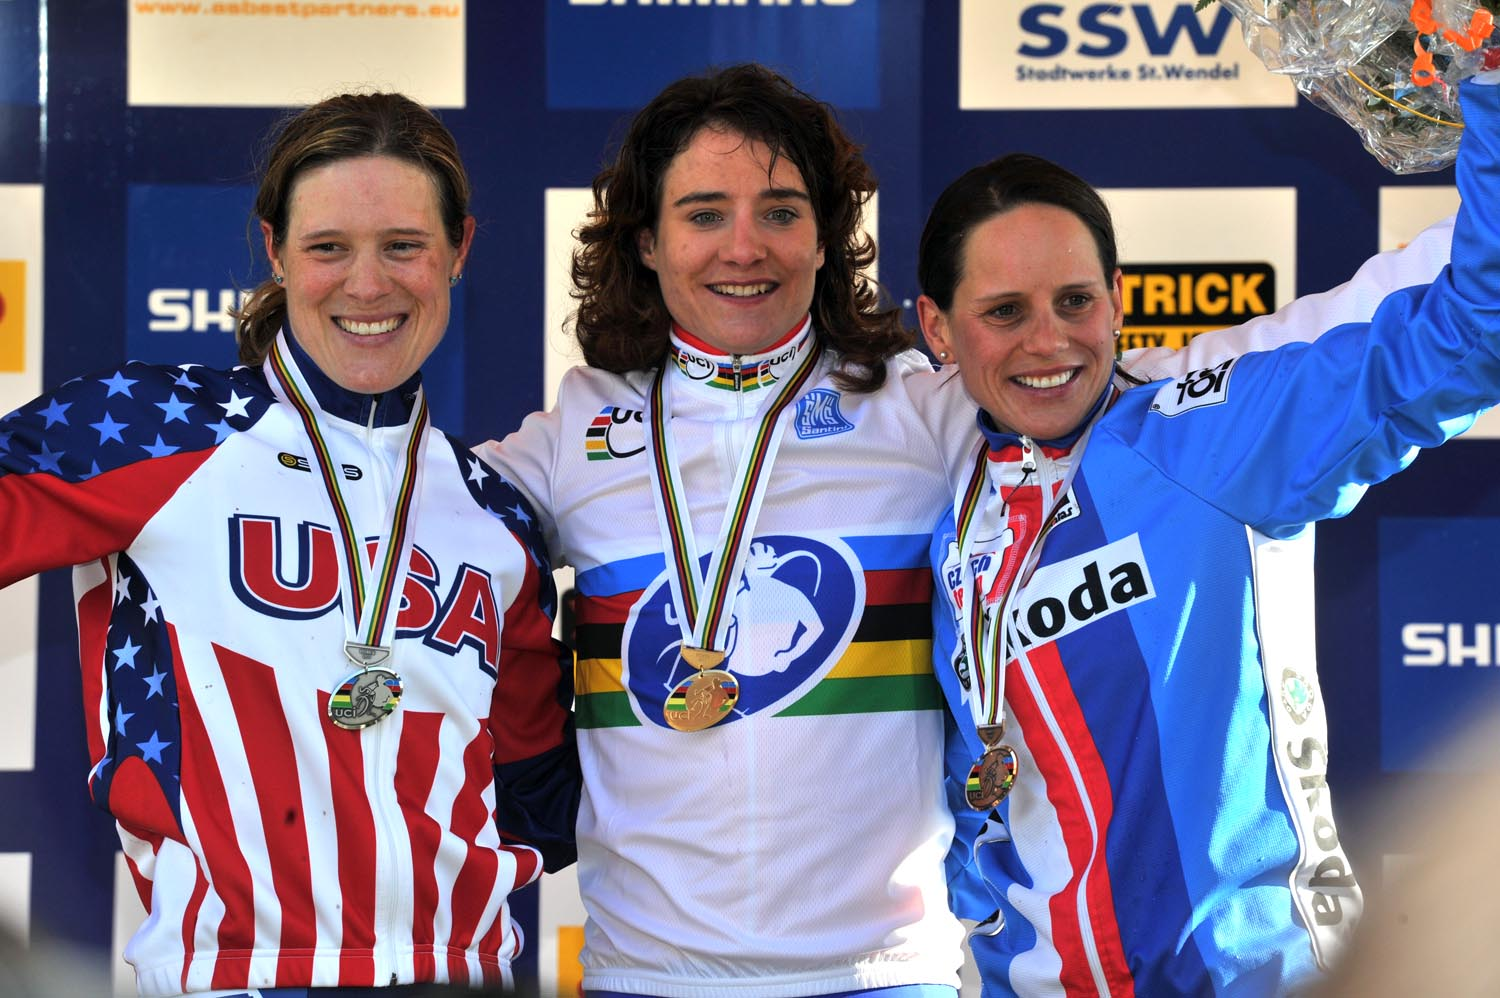 Marianne Vos tops women